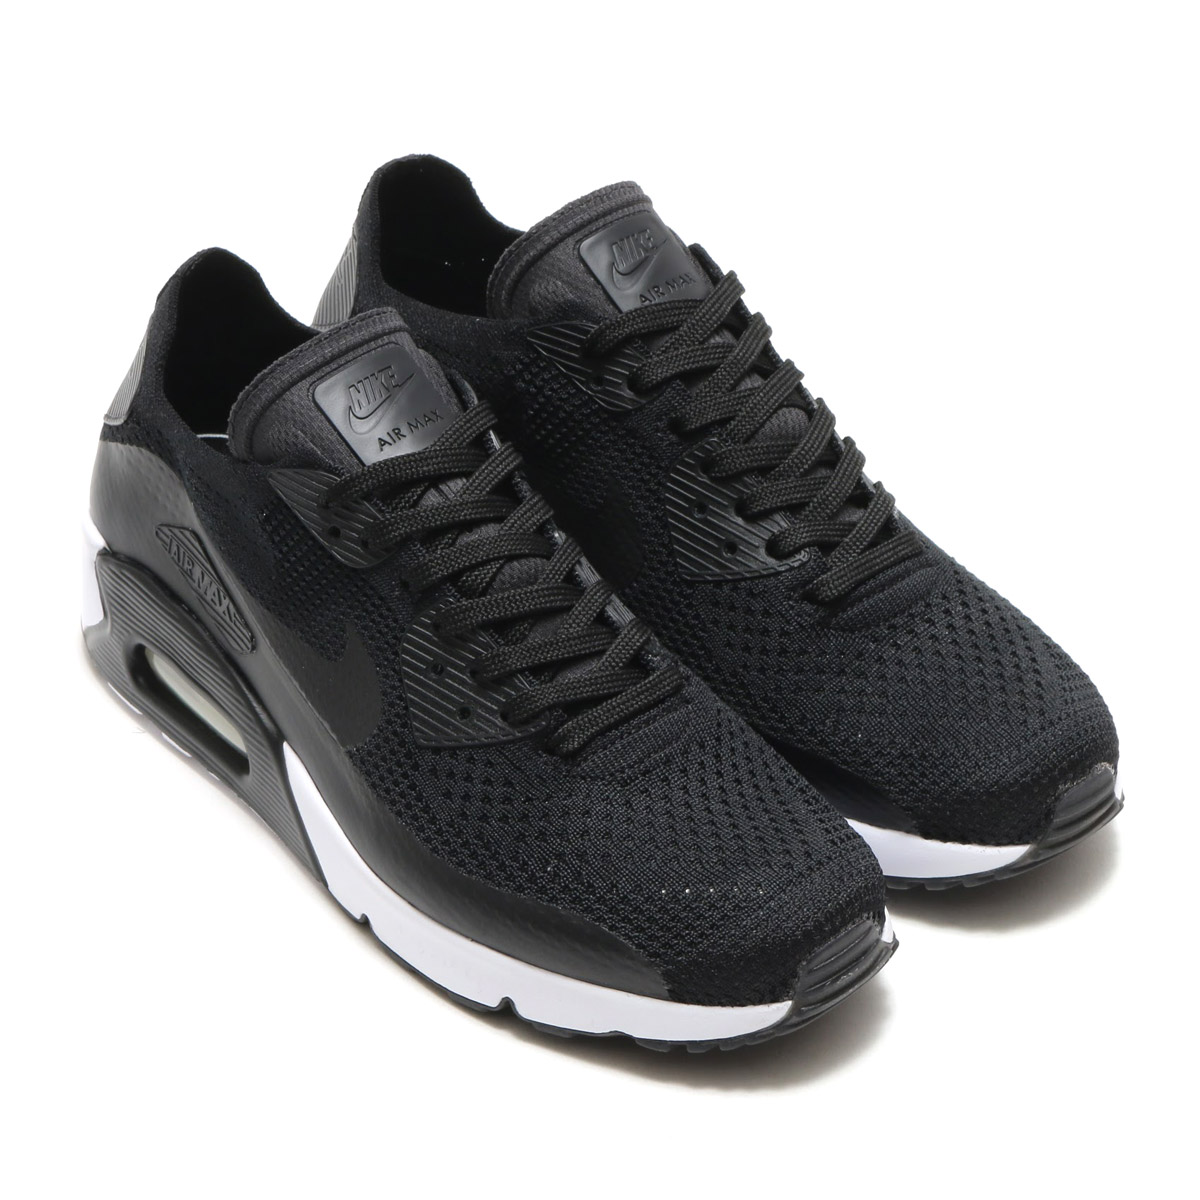 65eda25cd64a It renovates a design and expresses the hommage to Air Max icon. Is  distinguished for the form mid sole which adopt lightness and Flyknit upper  superior in ...